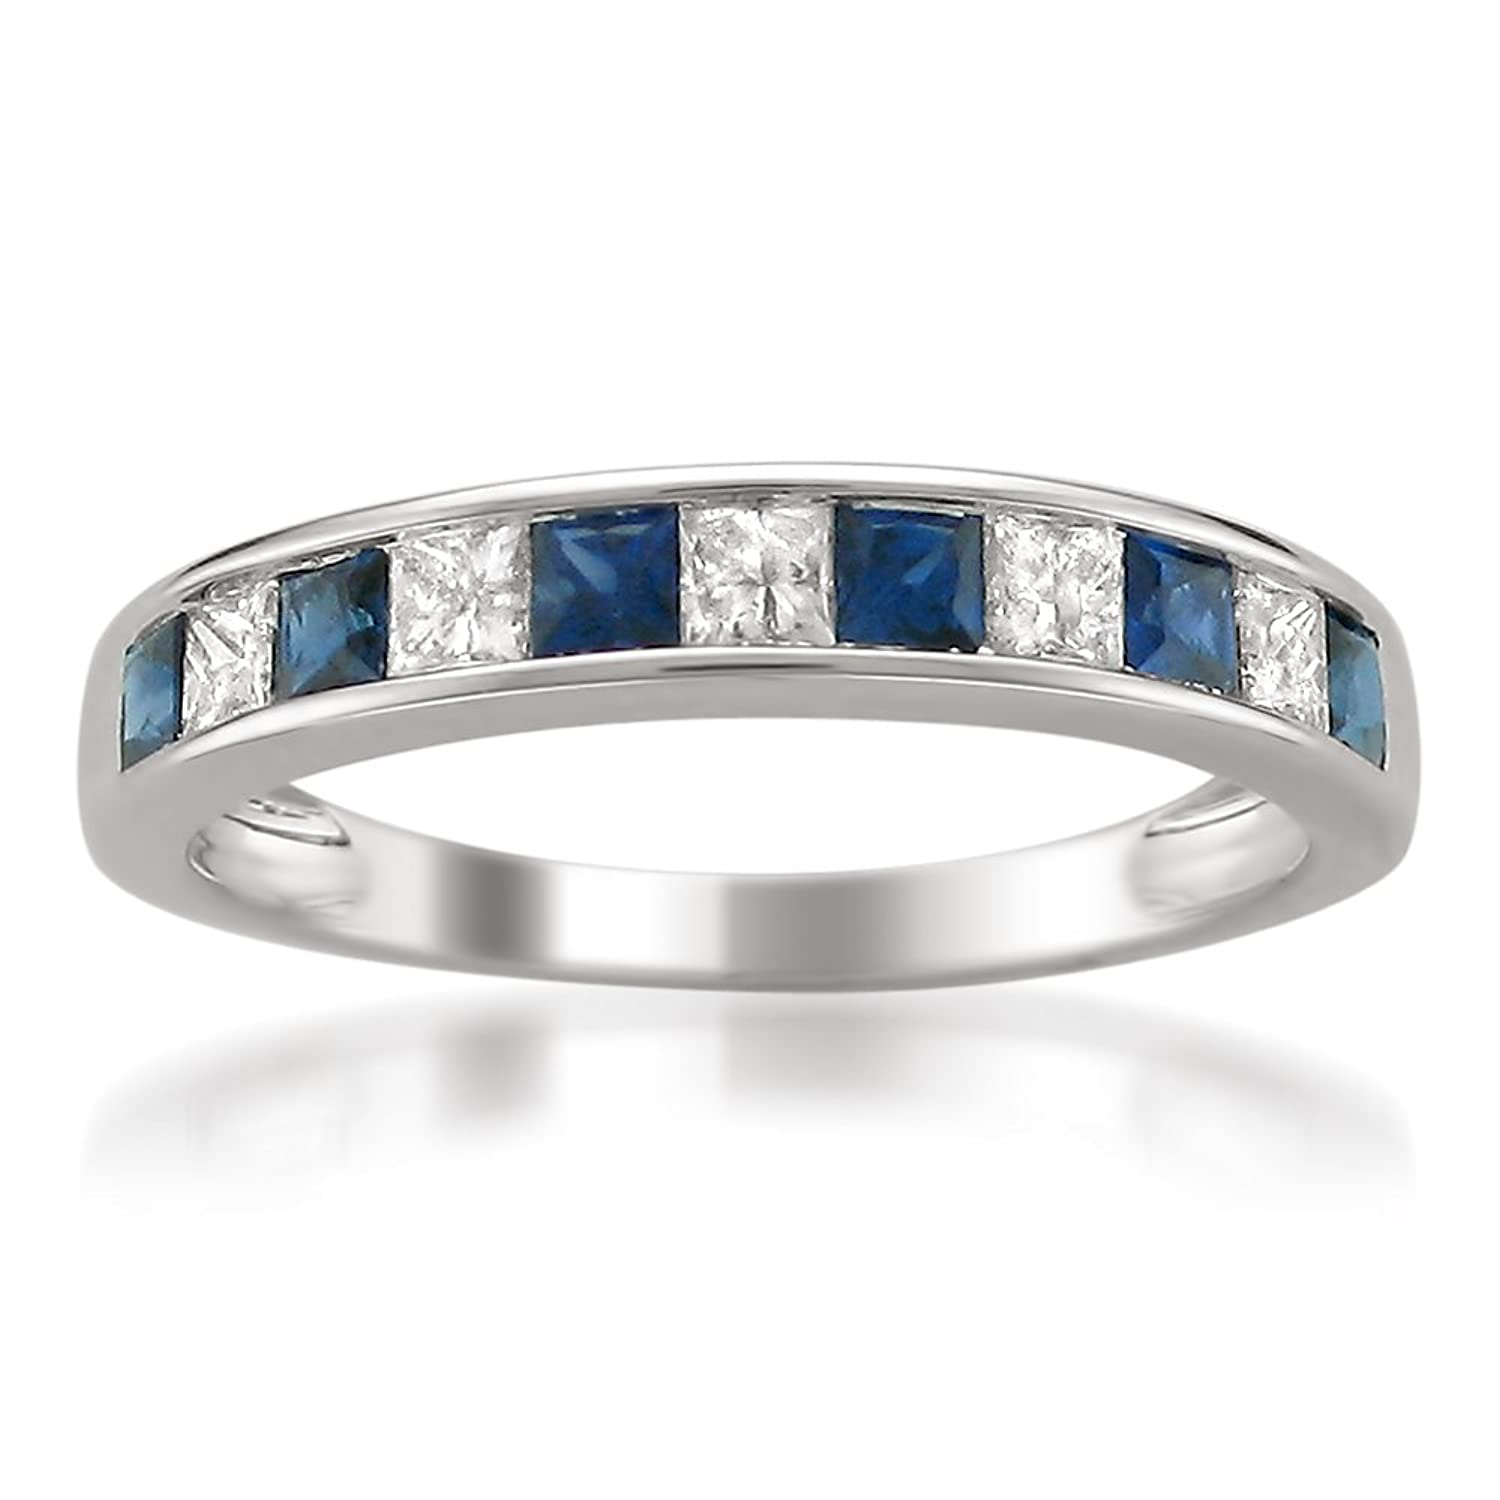 14k White Gold Princess cut Diamond and Blue Sapphire Wedding Band